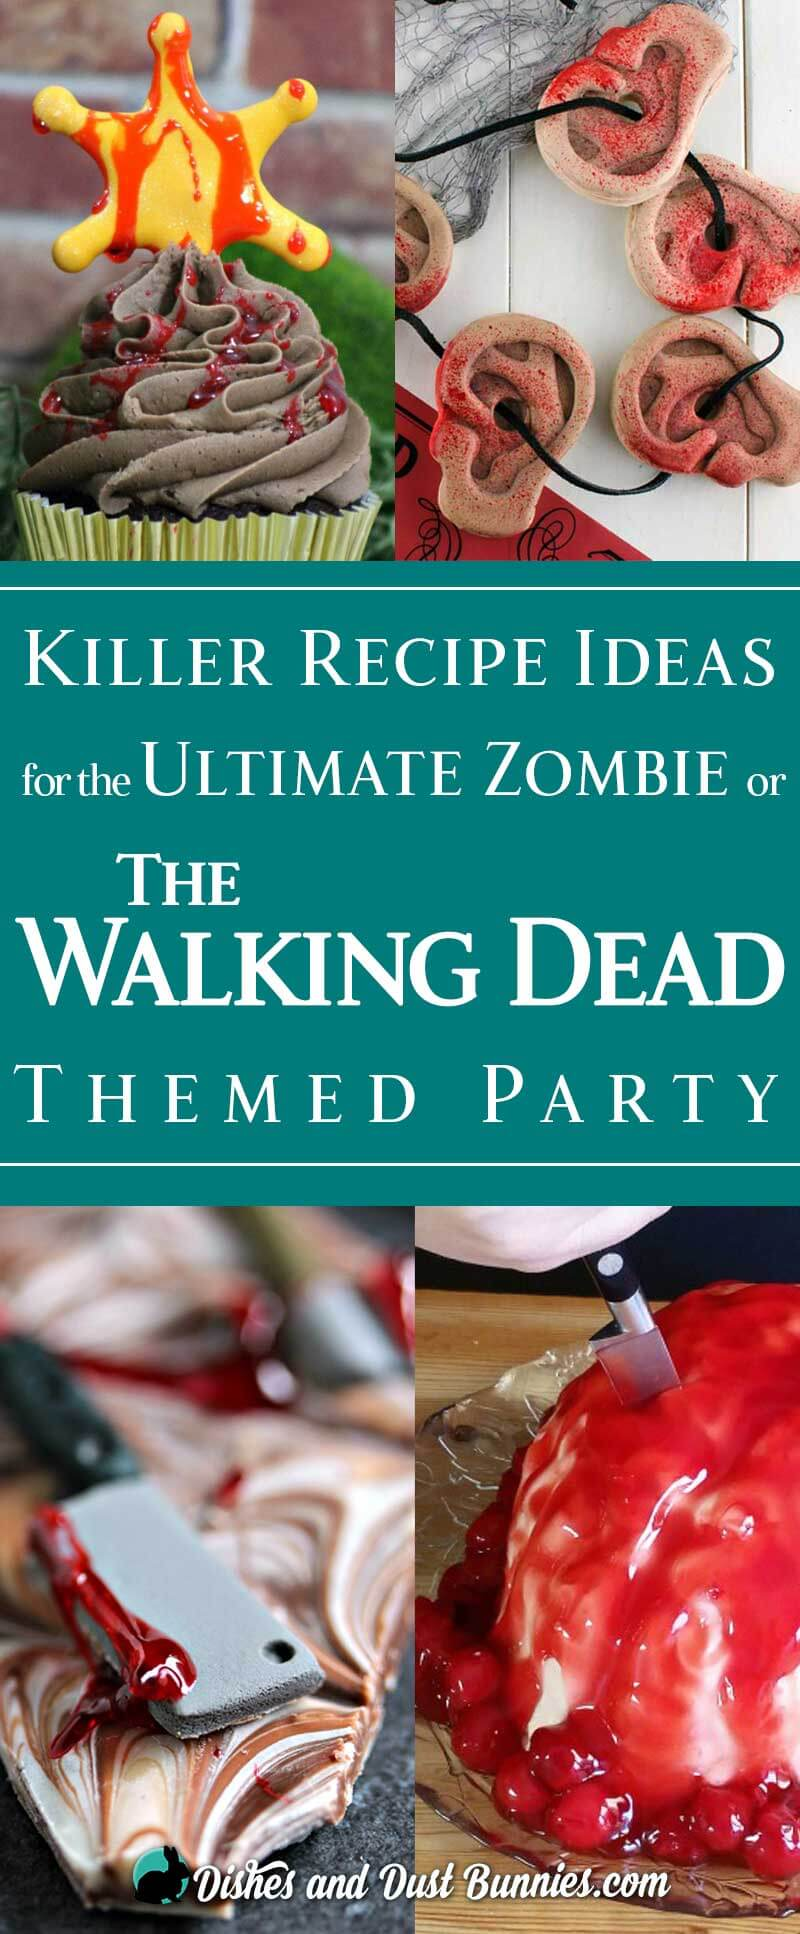 Killer Recipe Ideas for the Ultimate Zombie or The Walking Dead Themed Party - dishesanddustbunnies.com